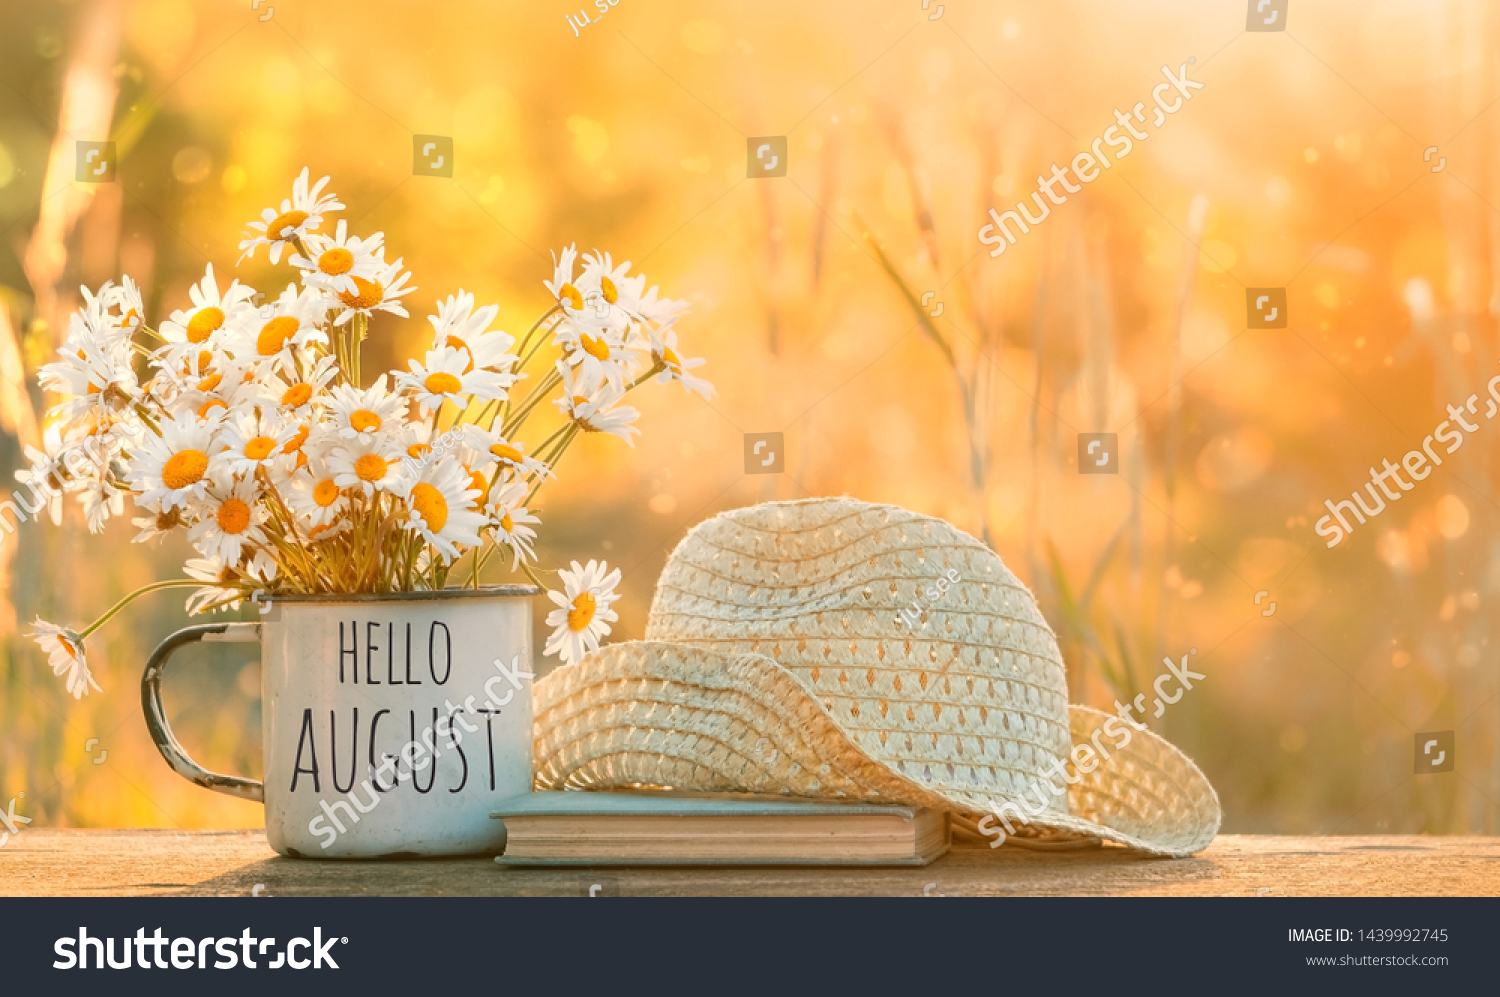 hello August. chamomile flowers in Cup, old book, braided hat in garden. Rural landscape with Chamomile in sunlight. Summertime season. copy space #1439992745